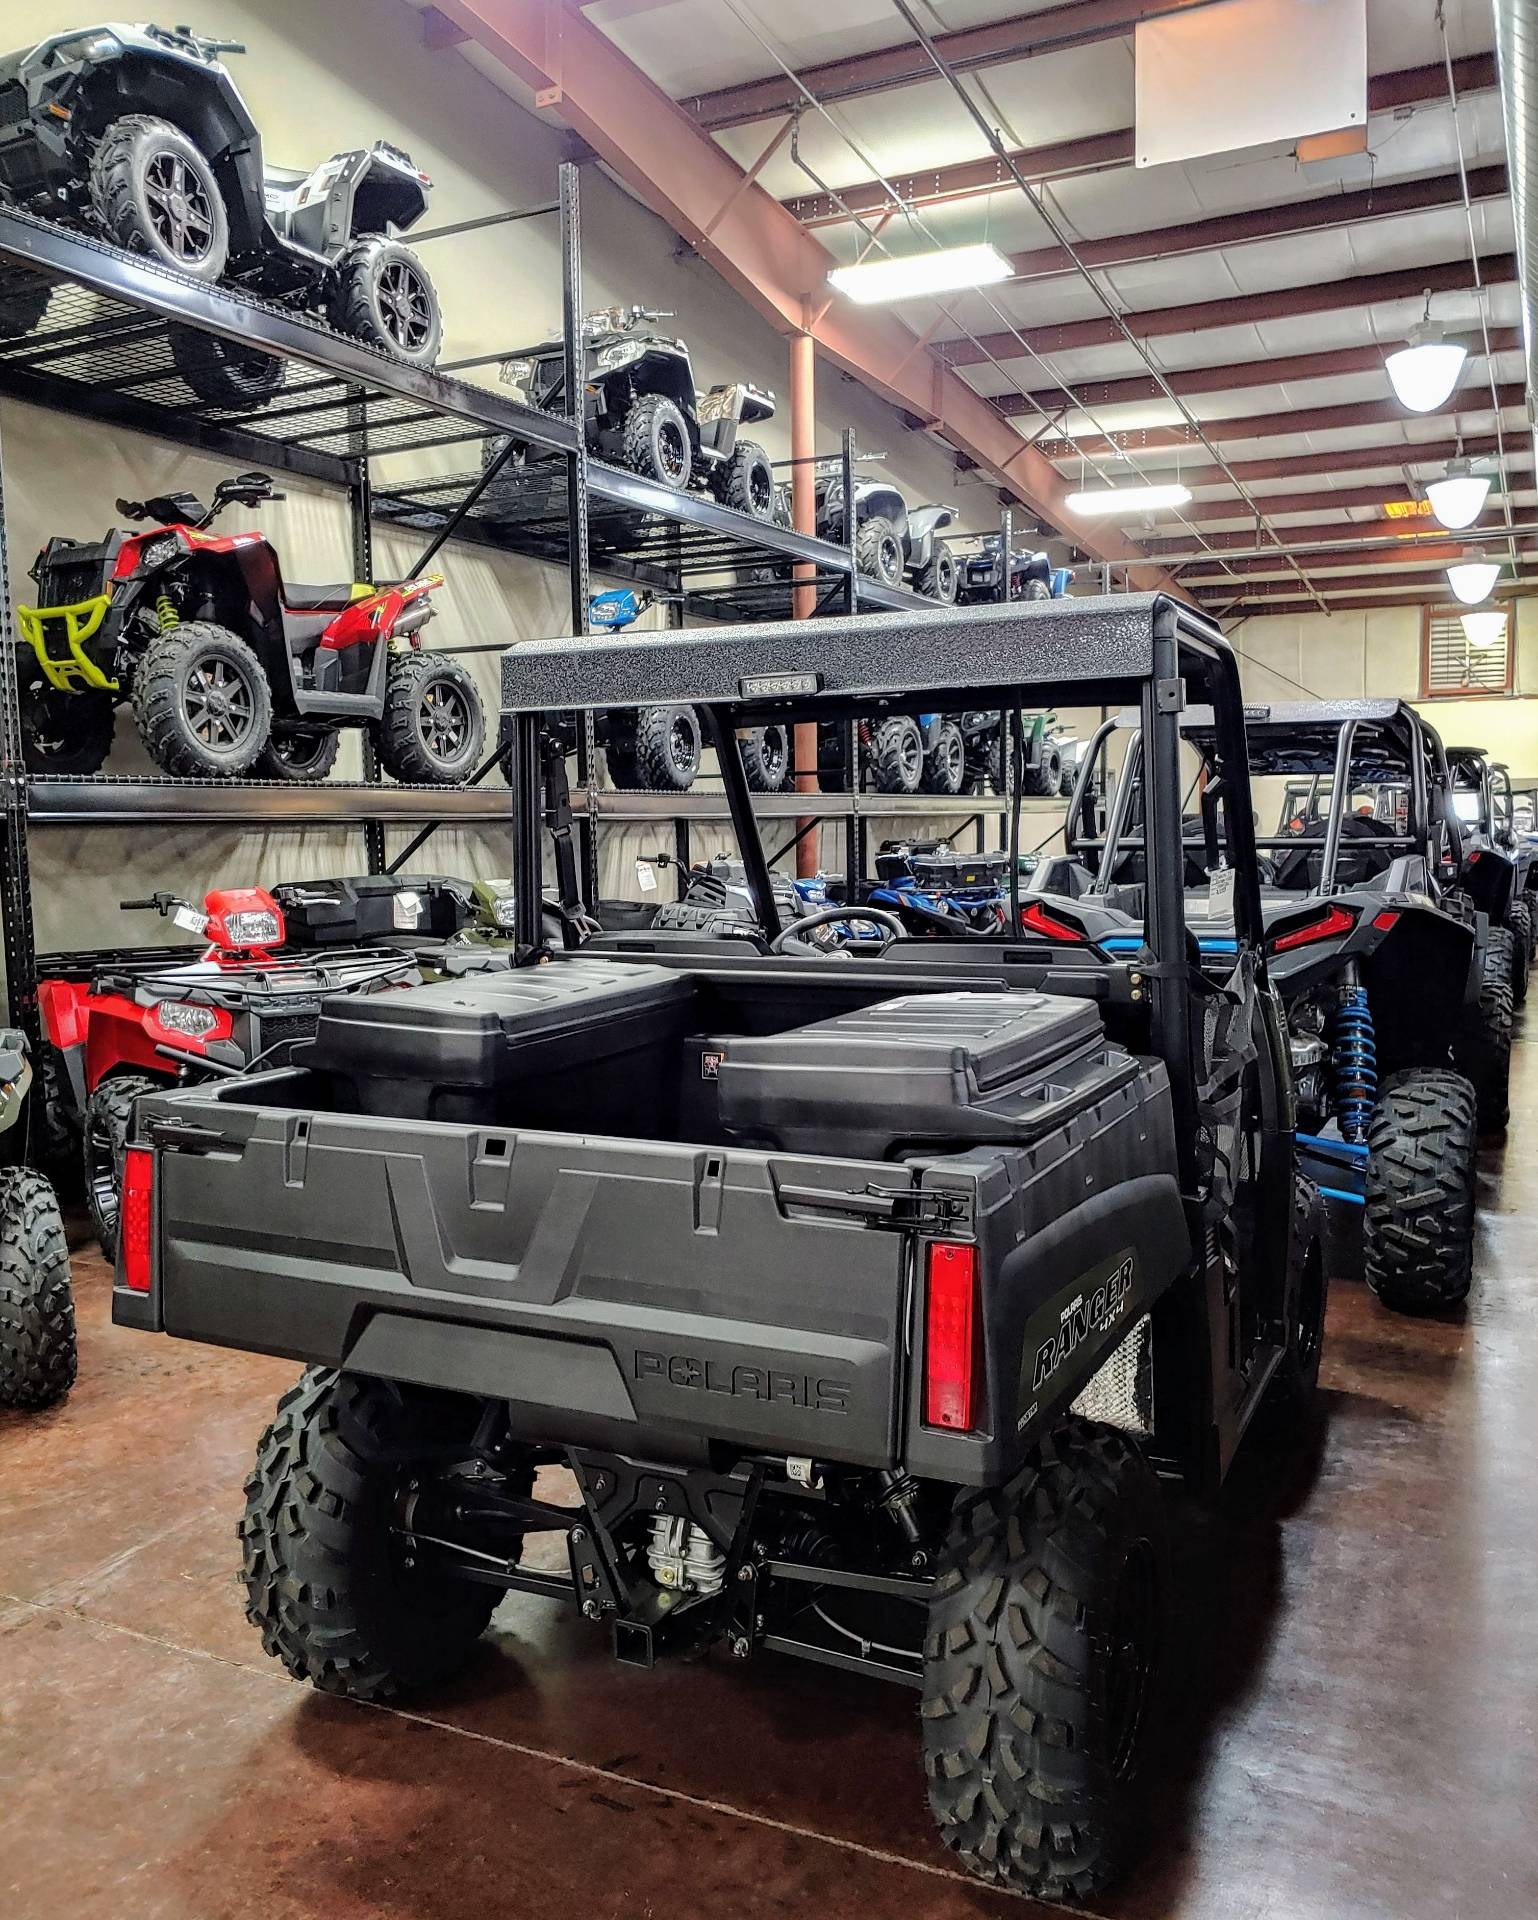 2019 Polaris Ranger 500 in Statesville, North Carolina - Photo 5